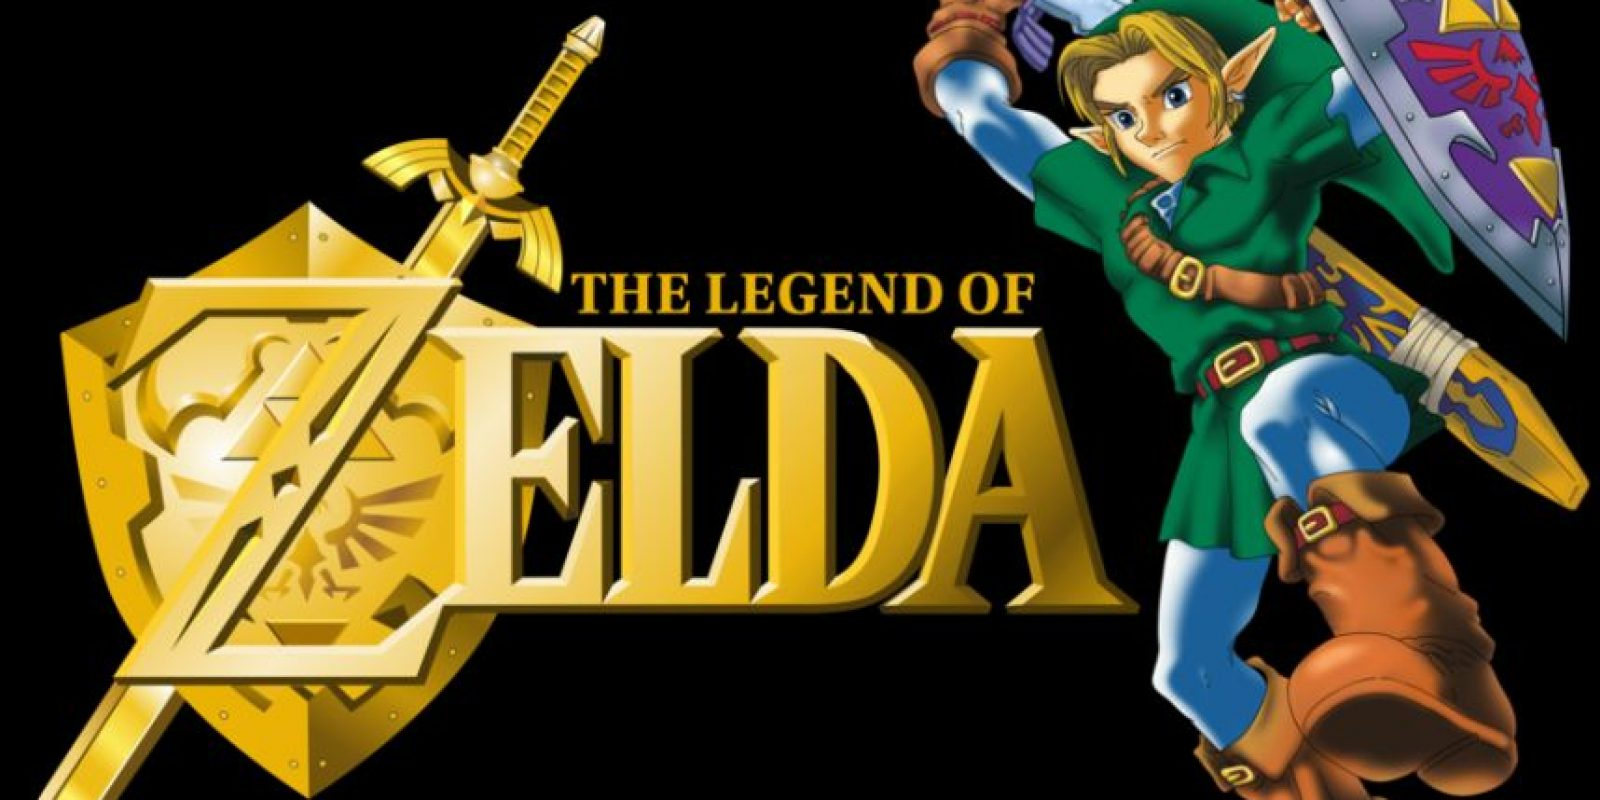 El primer lugar lo ocupa The Legend of Zelda: Ocarina of Time. Foto: Google